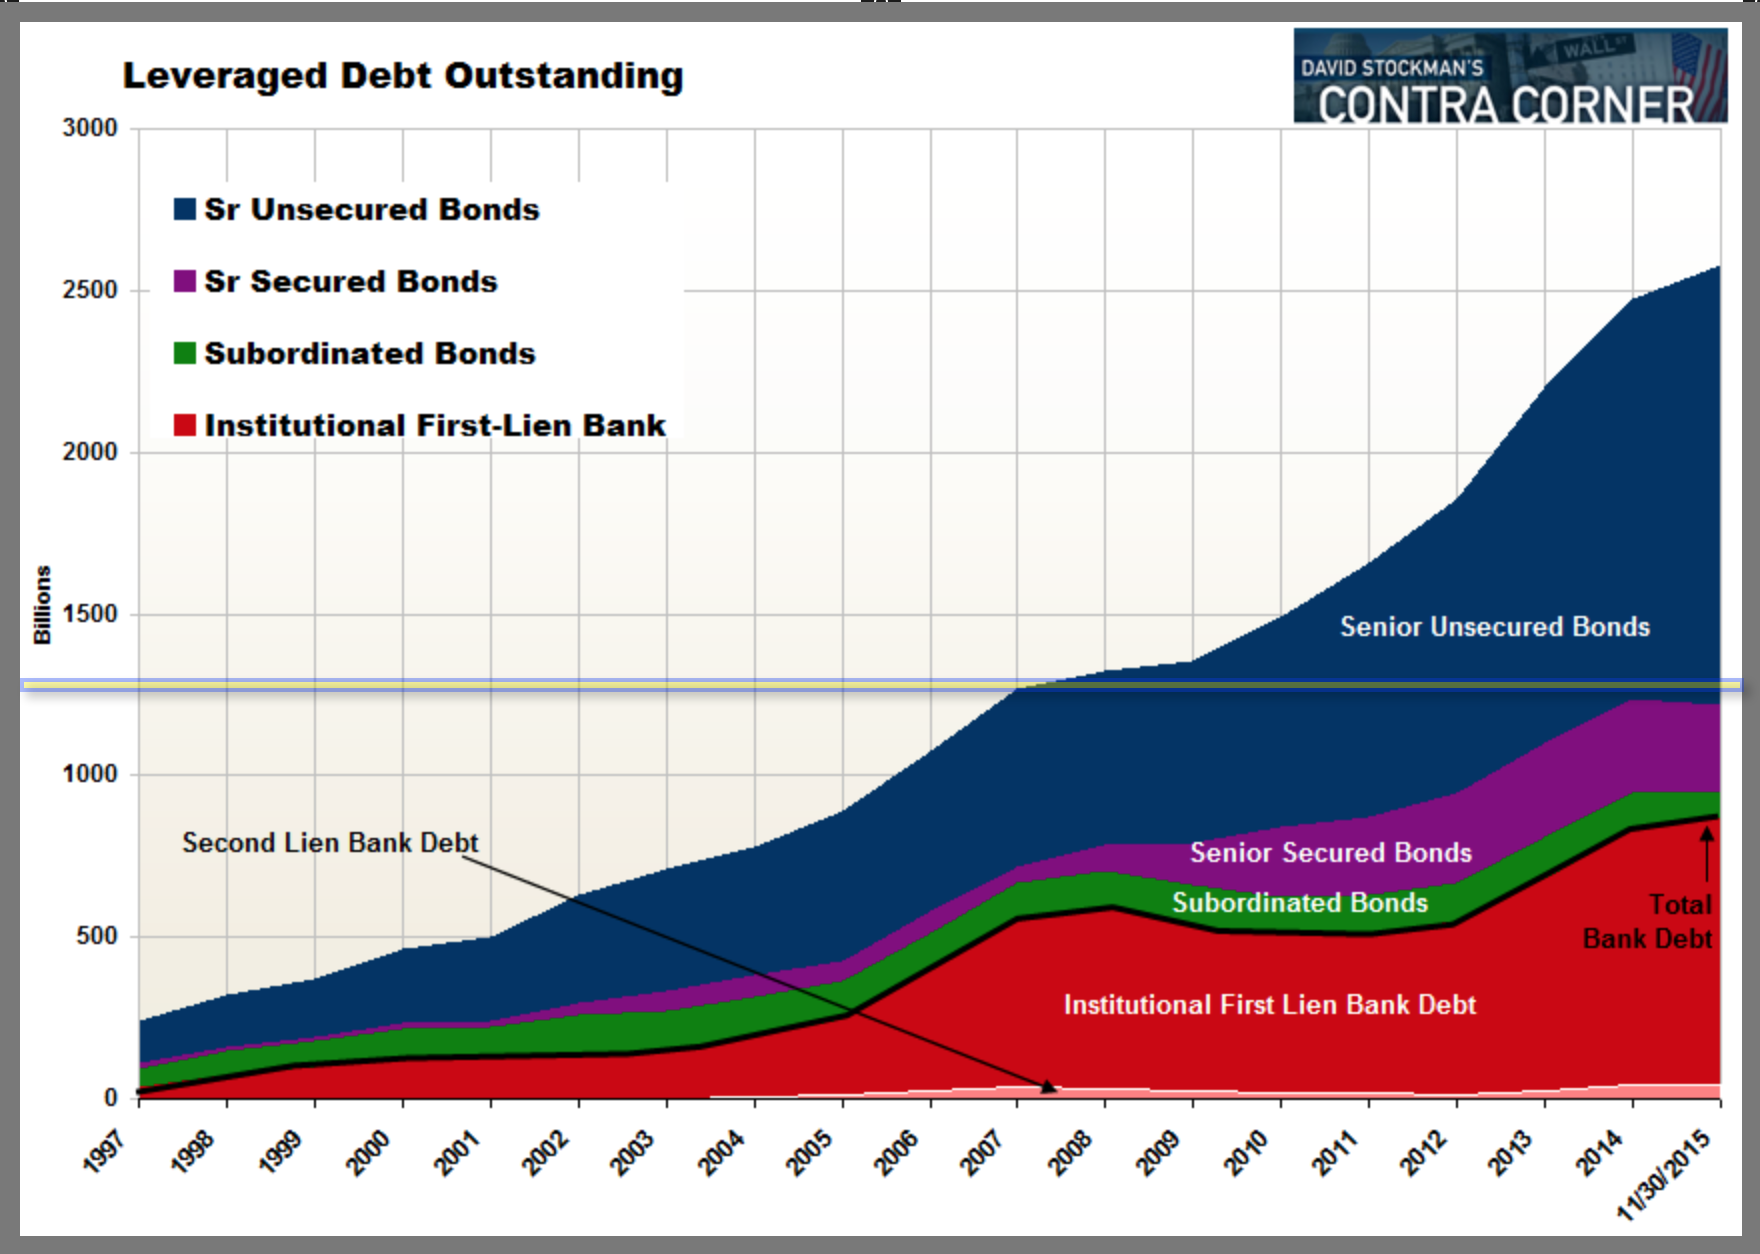 buyback debt taken on